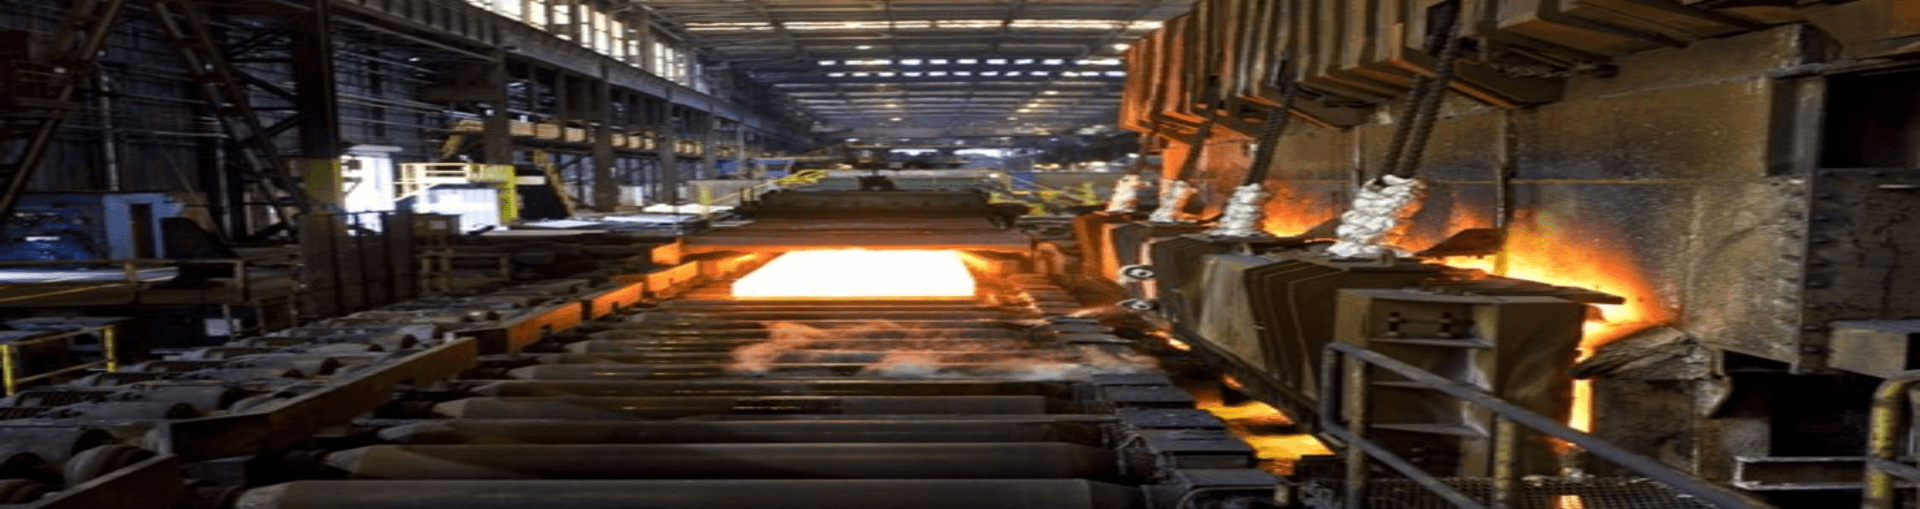 Steel plant interior with molten steel